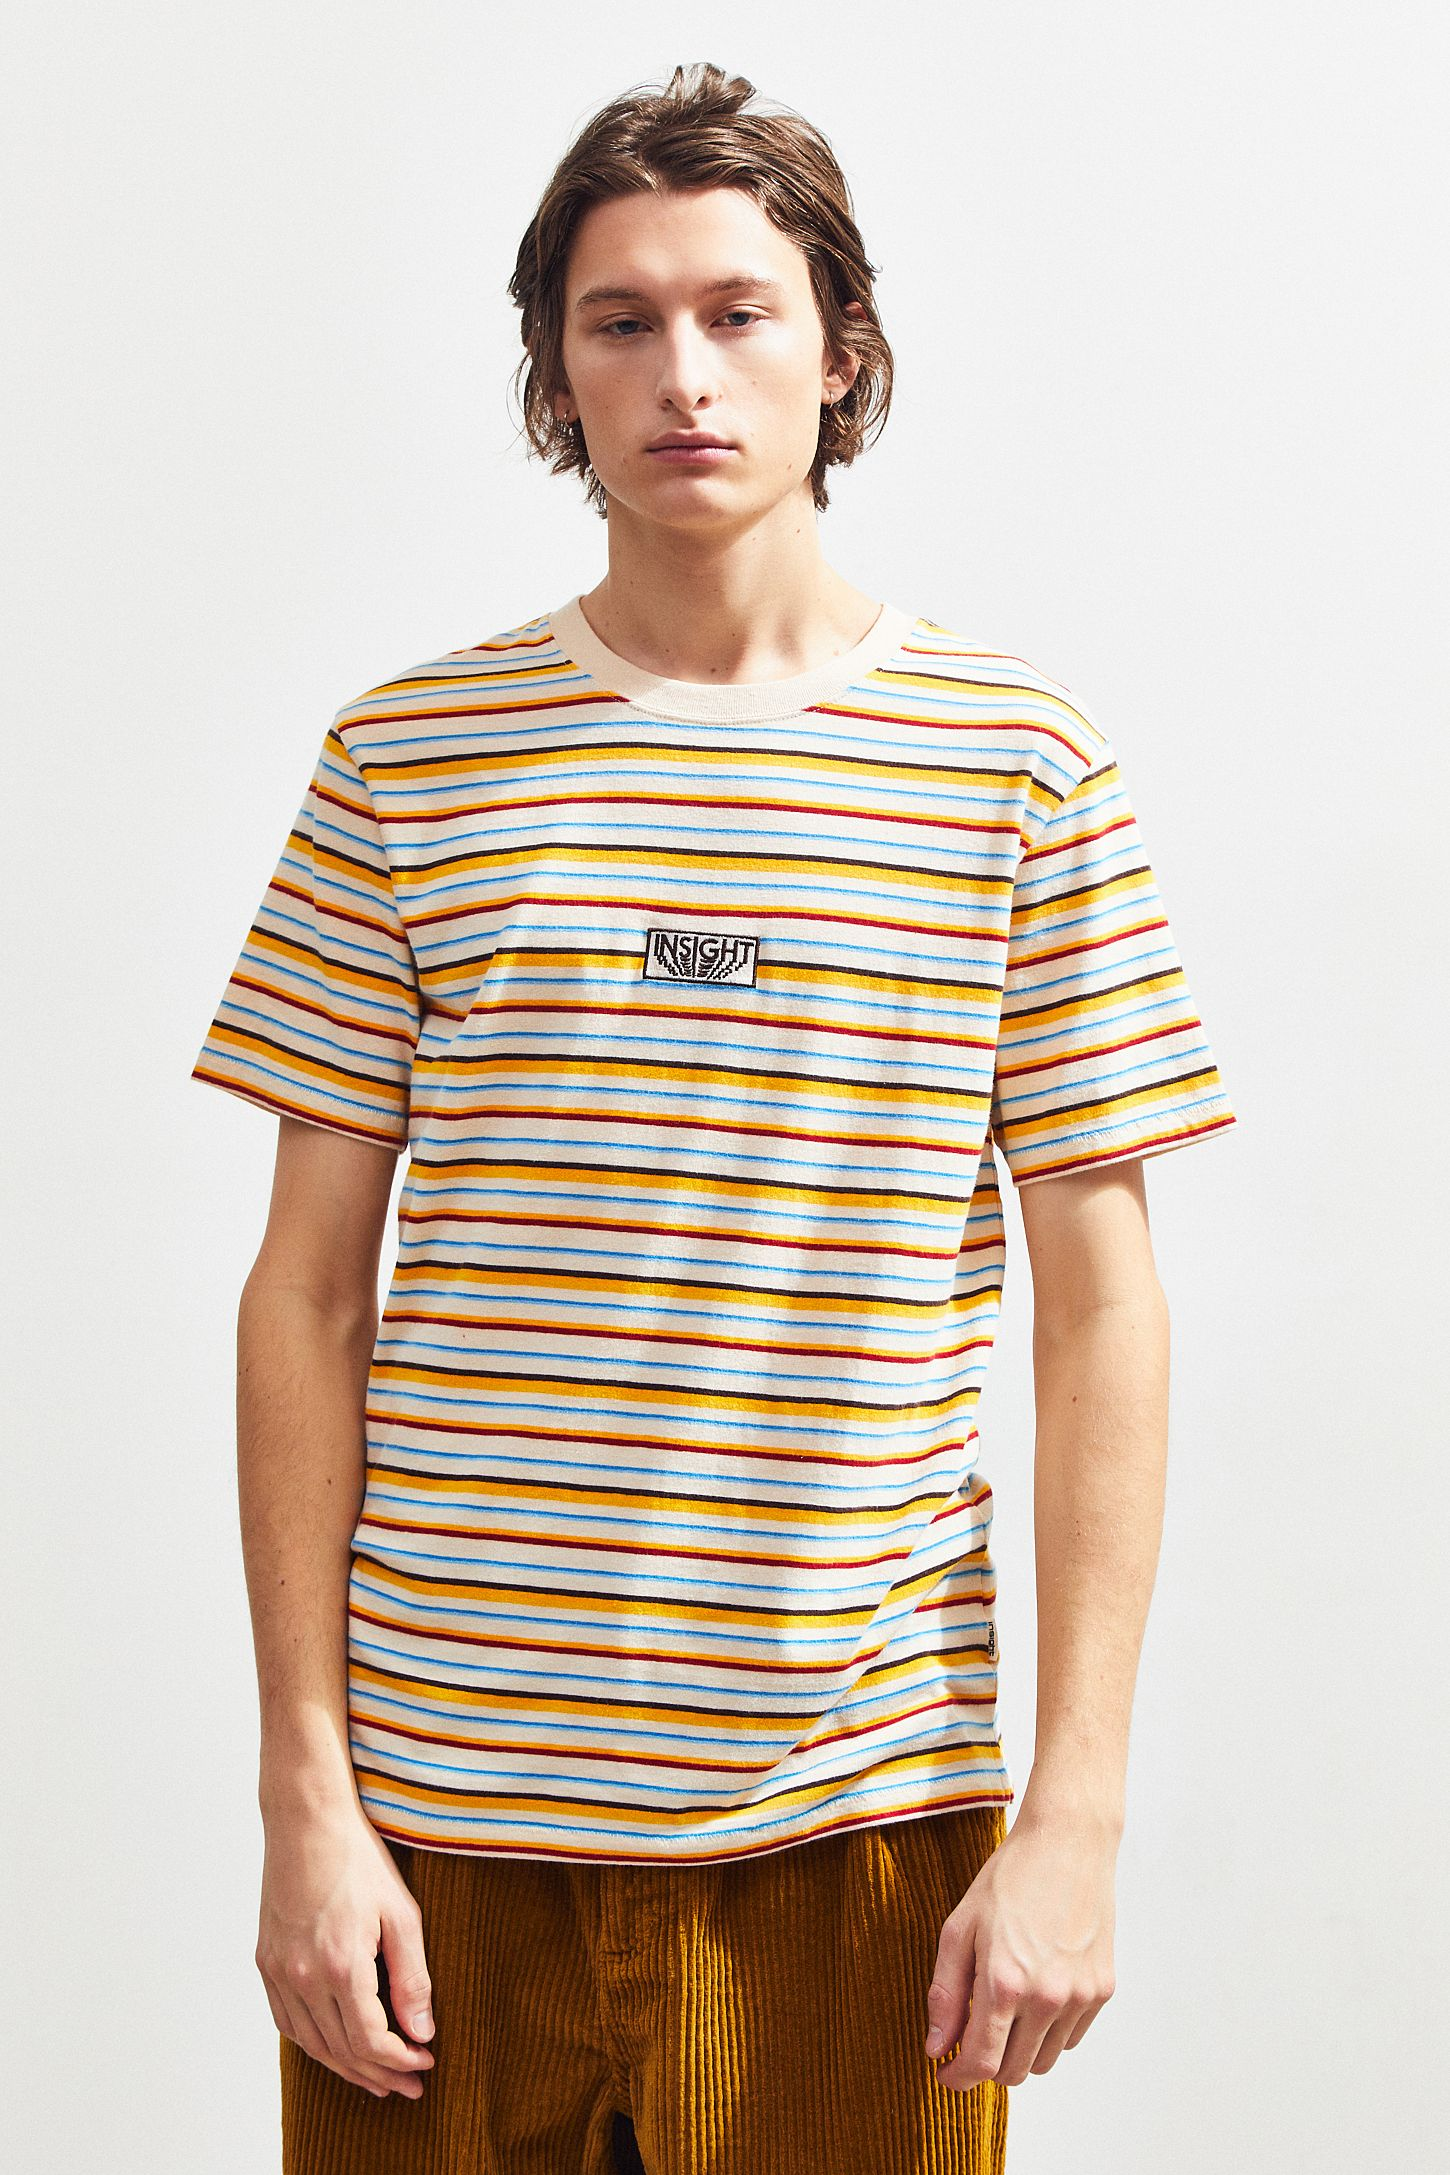 274c6616 Guess Jeans Shirt Striped Yellow | Huston Fislar Photography